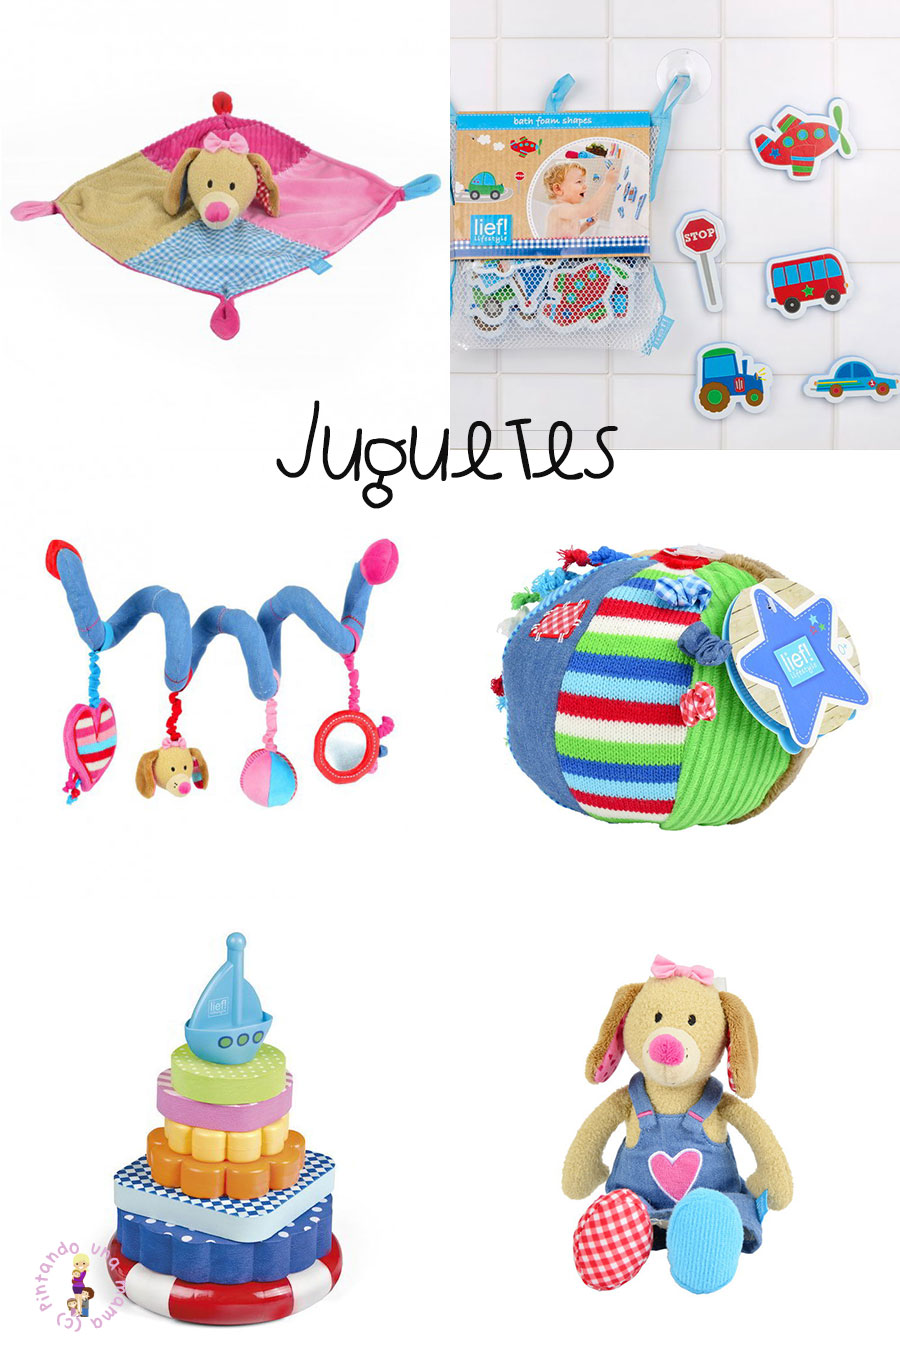 juguetes-infanity-lieflifestyle